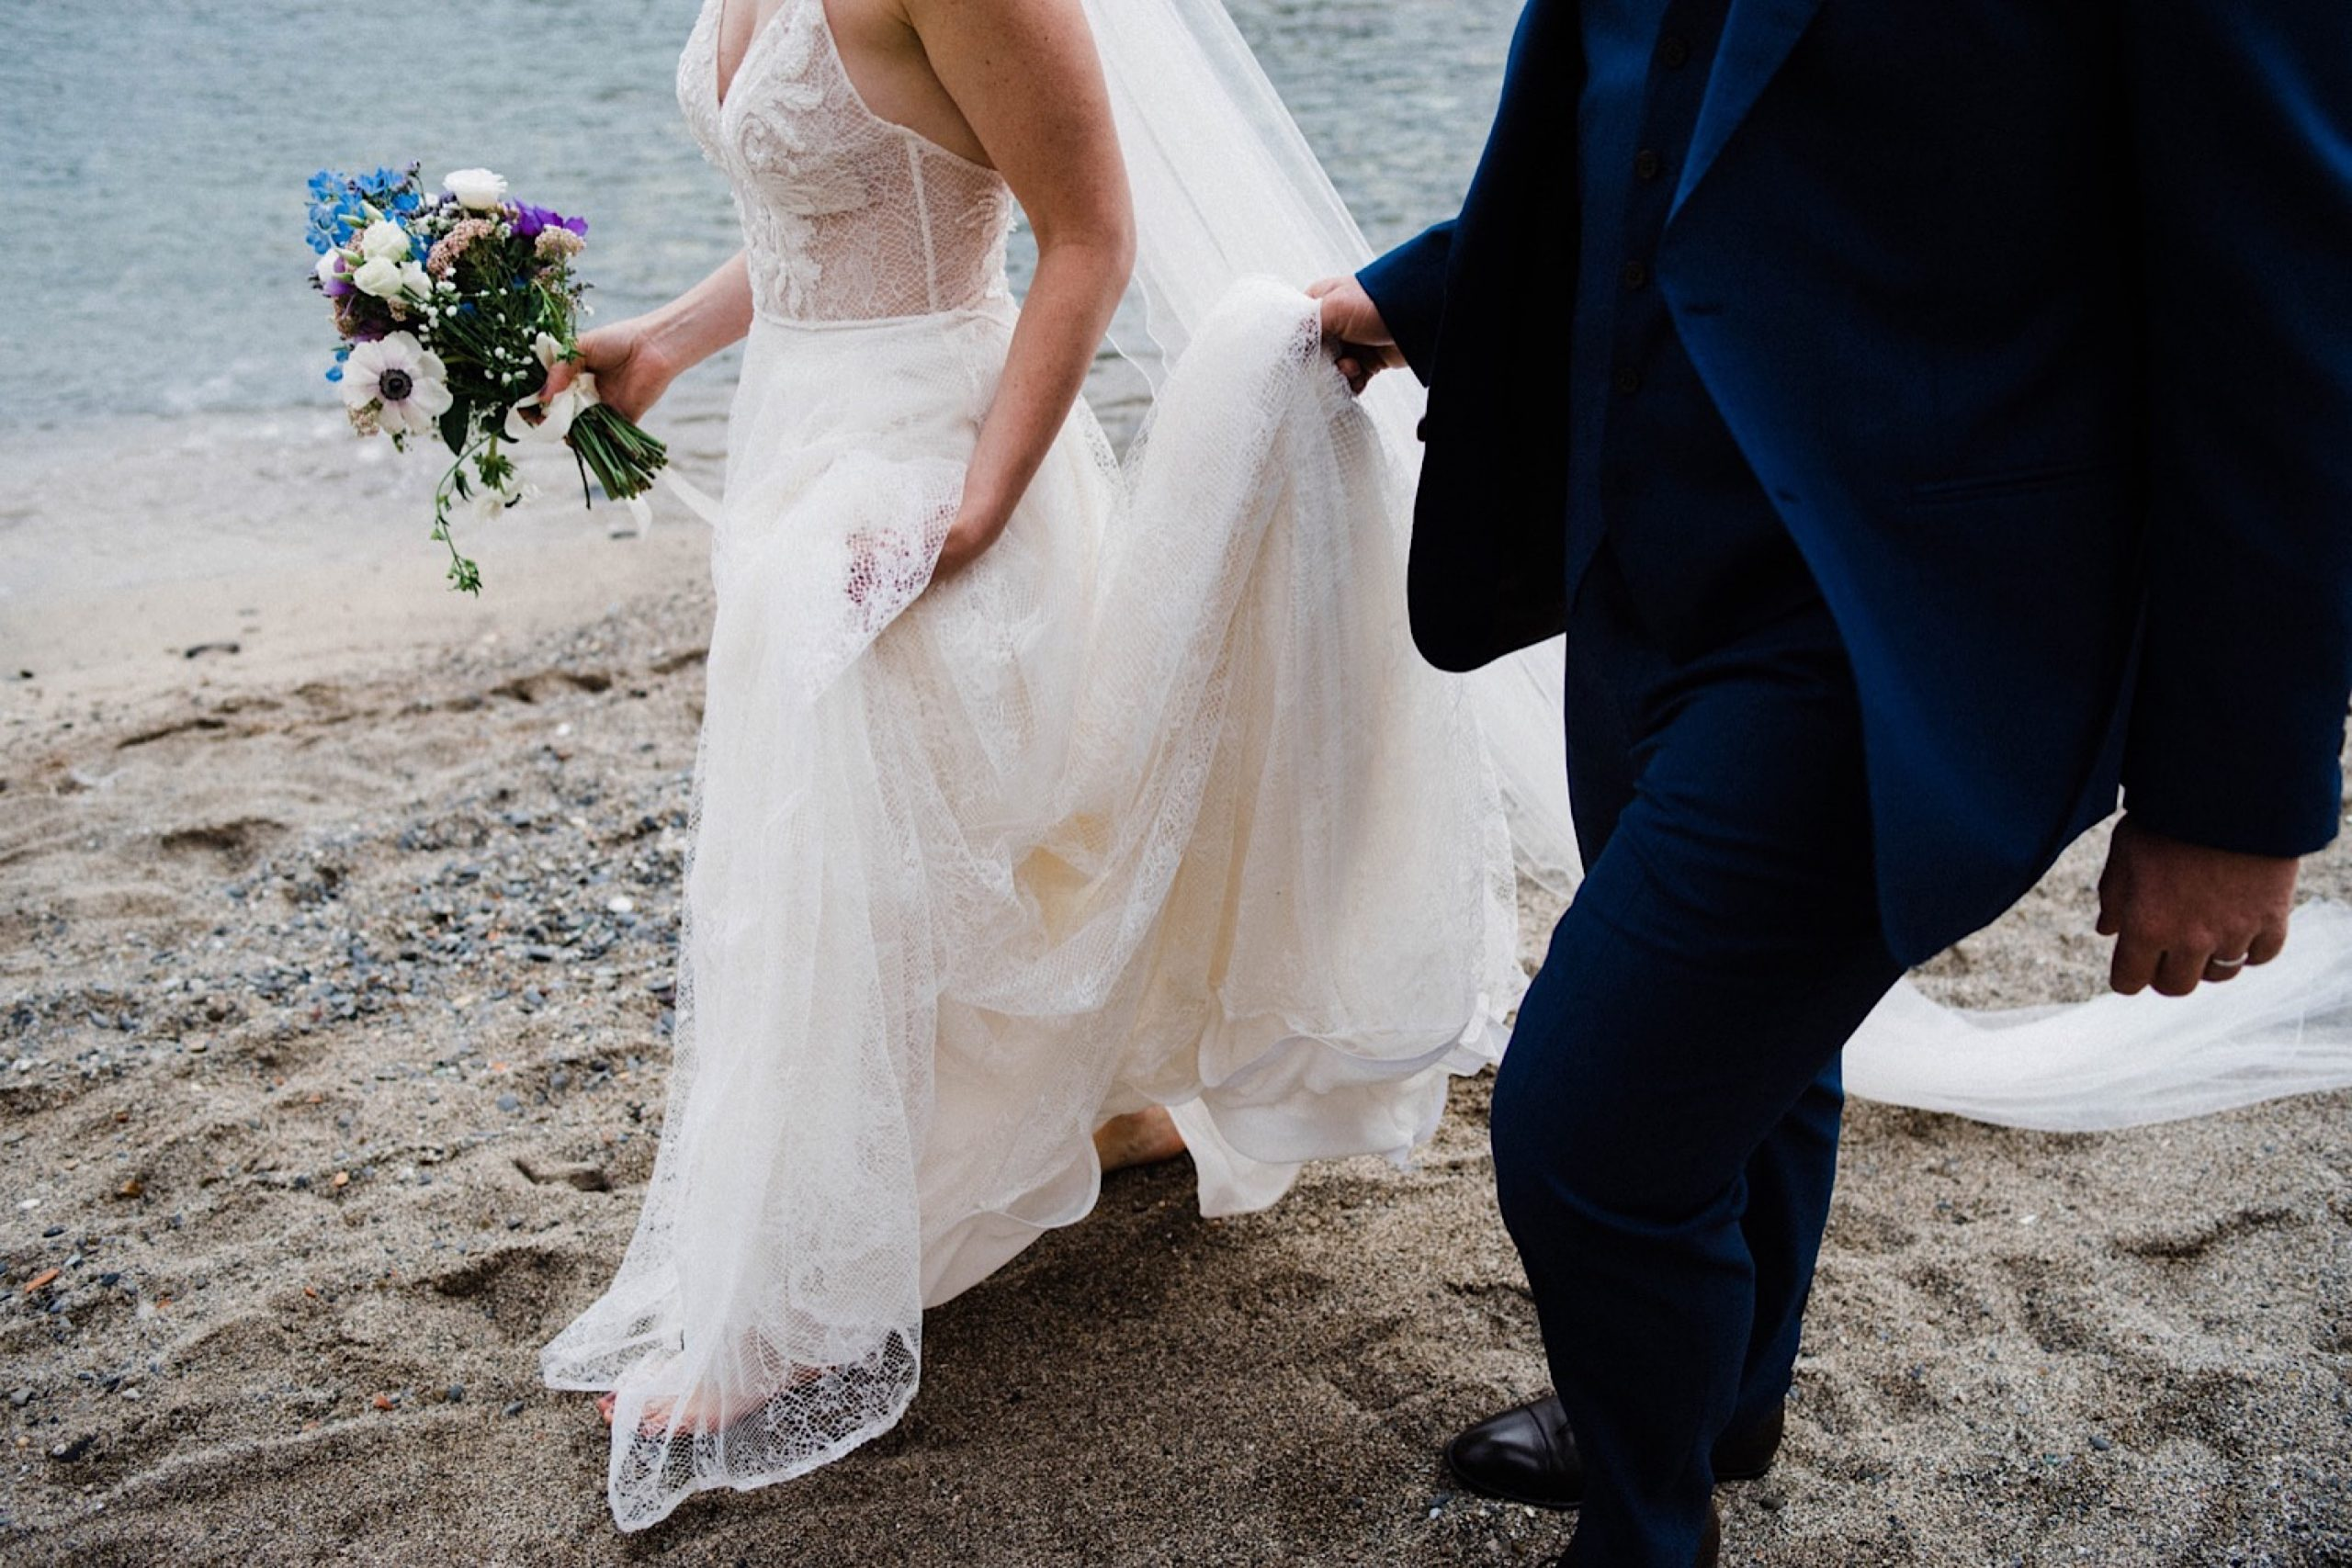 Natural Destination Wedding Photography in Italy of the bride & groom walking together.